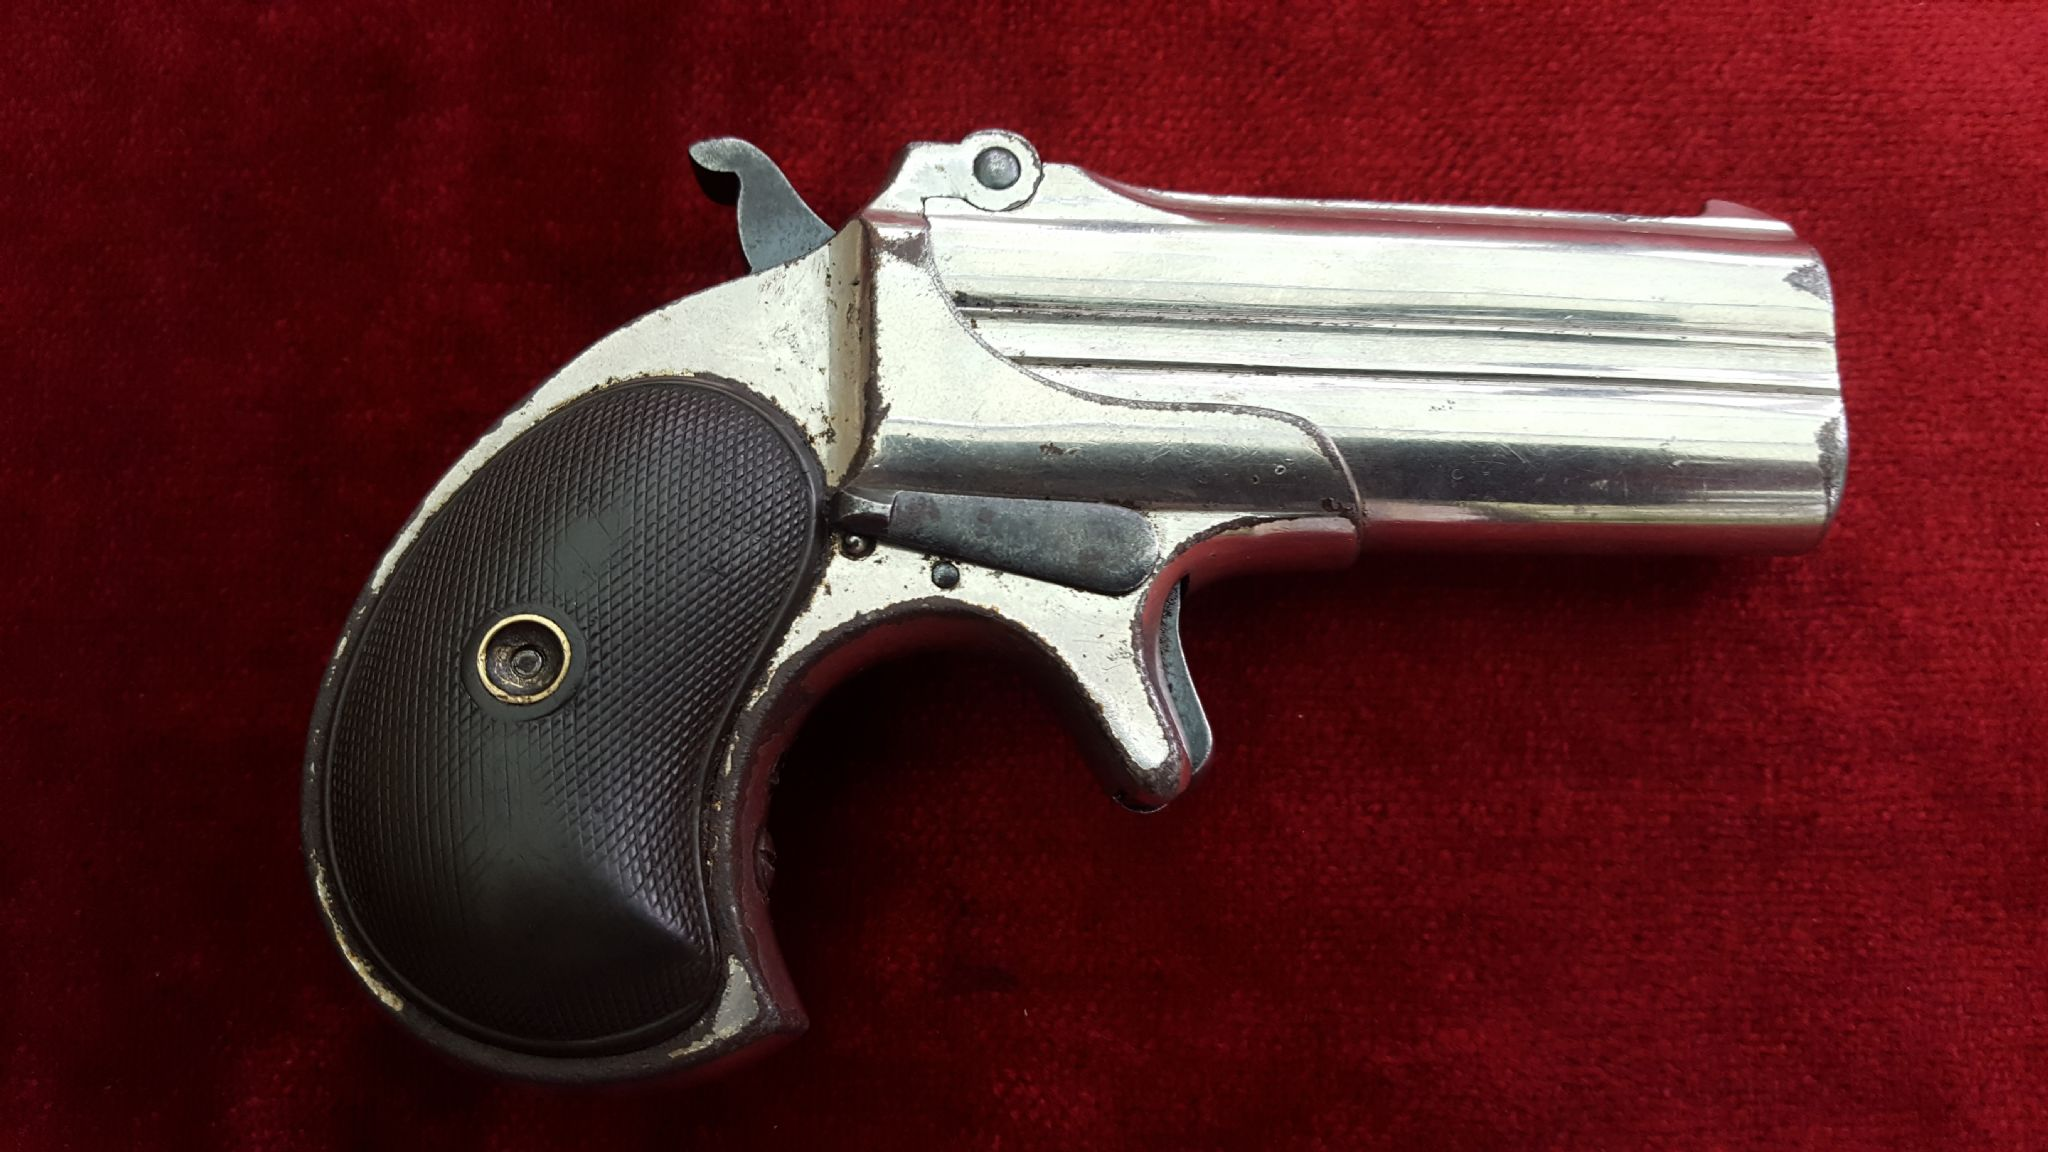 X X X SOLD X X X Remington  41 rimfire gambler s Derringer